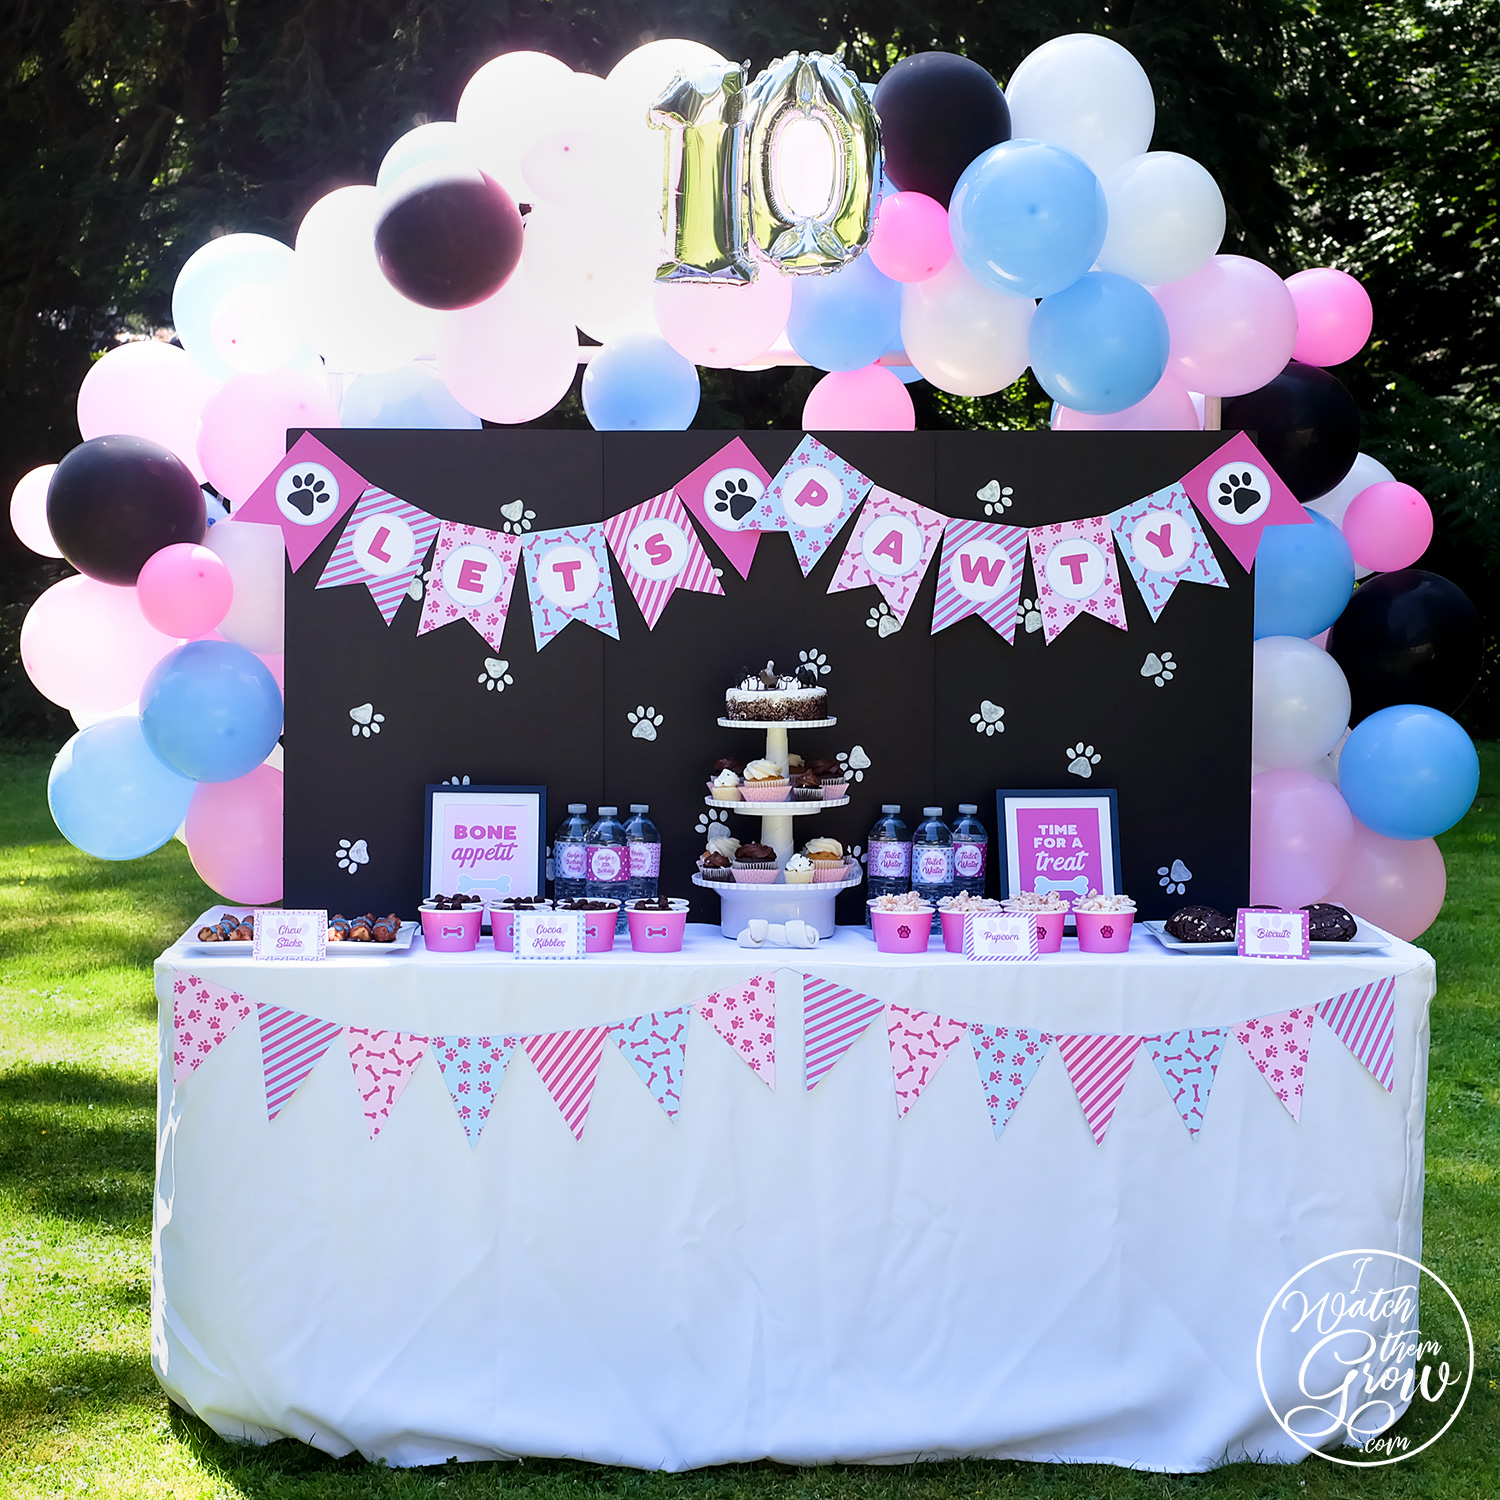 SWEET TREATS  TABLE  PARTY SIGN BANNER WALL DECORATION BUNTING